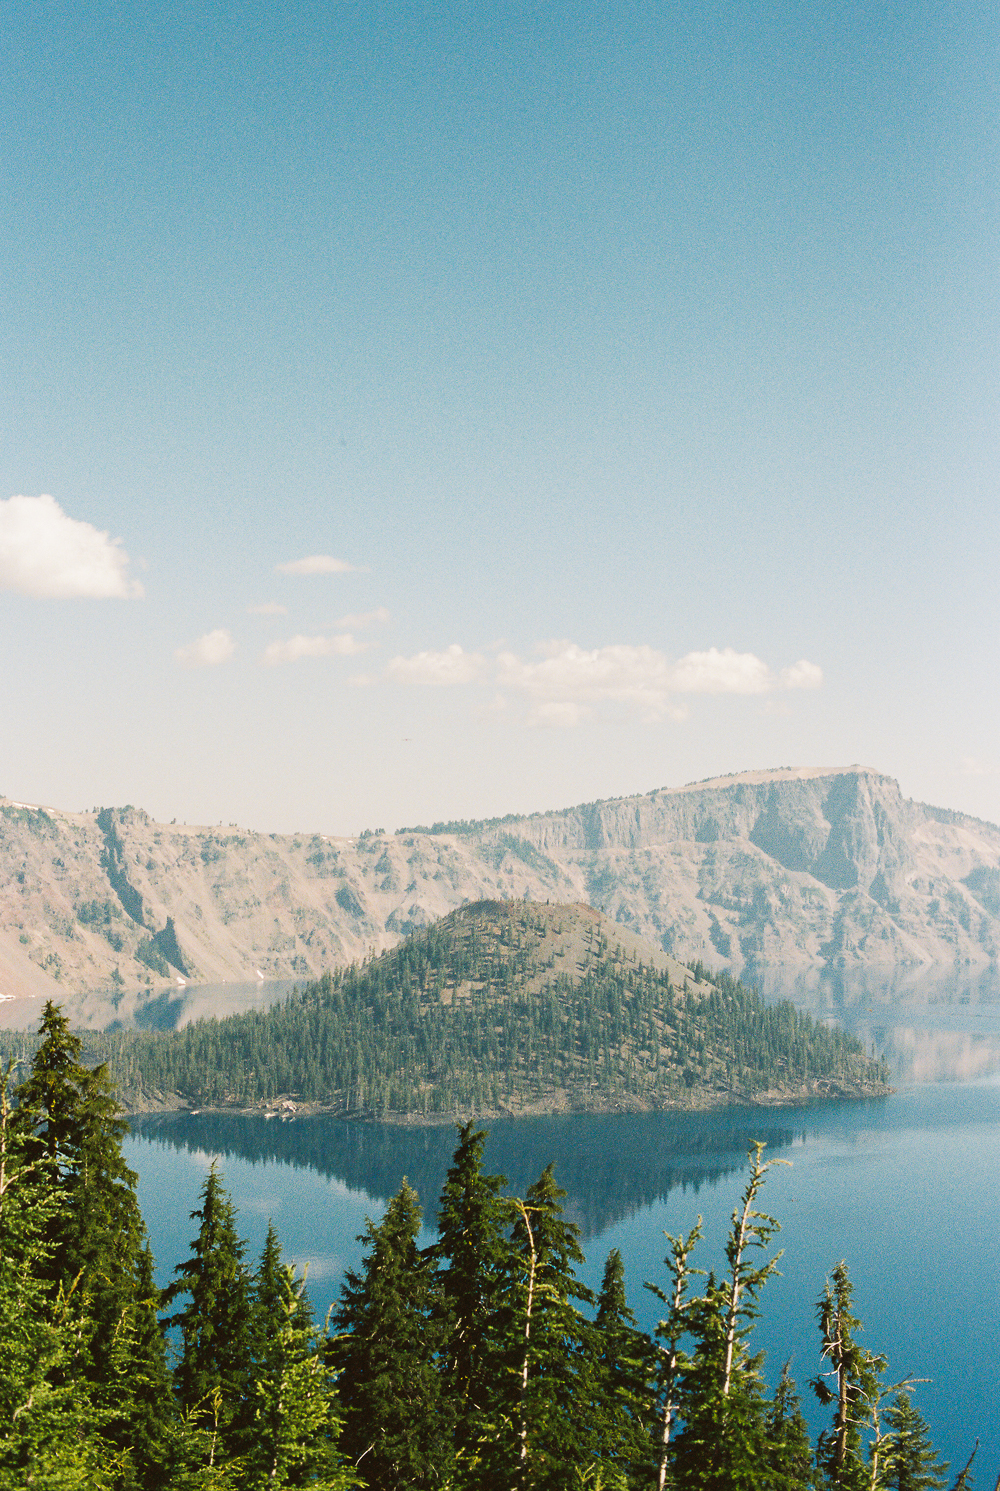 Wizard Island, Crater Lake, Oregon - Portra 400 on Nikon N90s